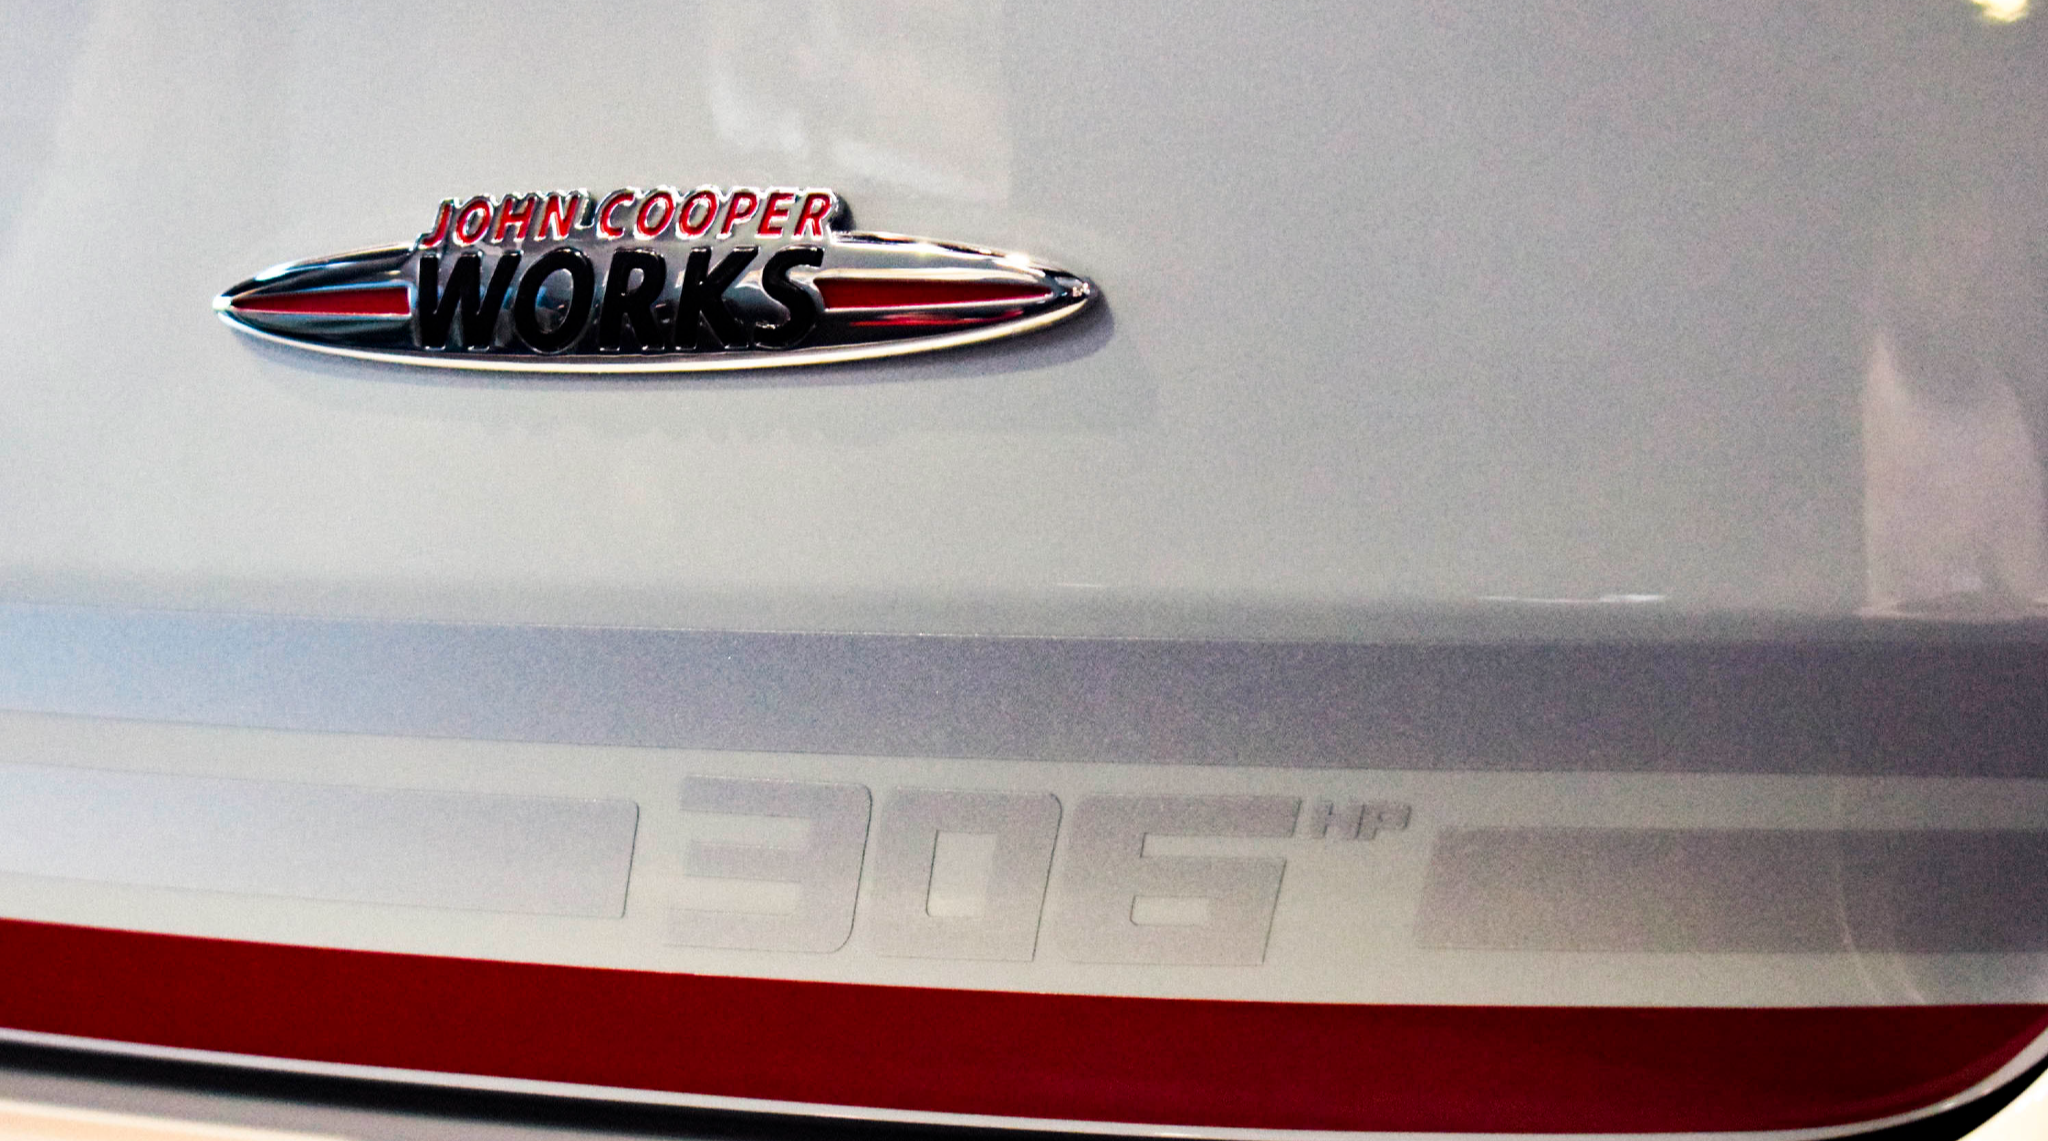 Clubman John Cooper Works Badge 306hp White Silver Edition